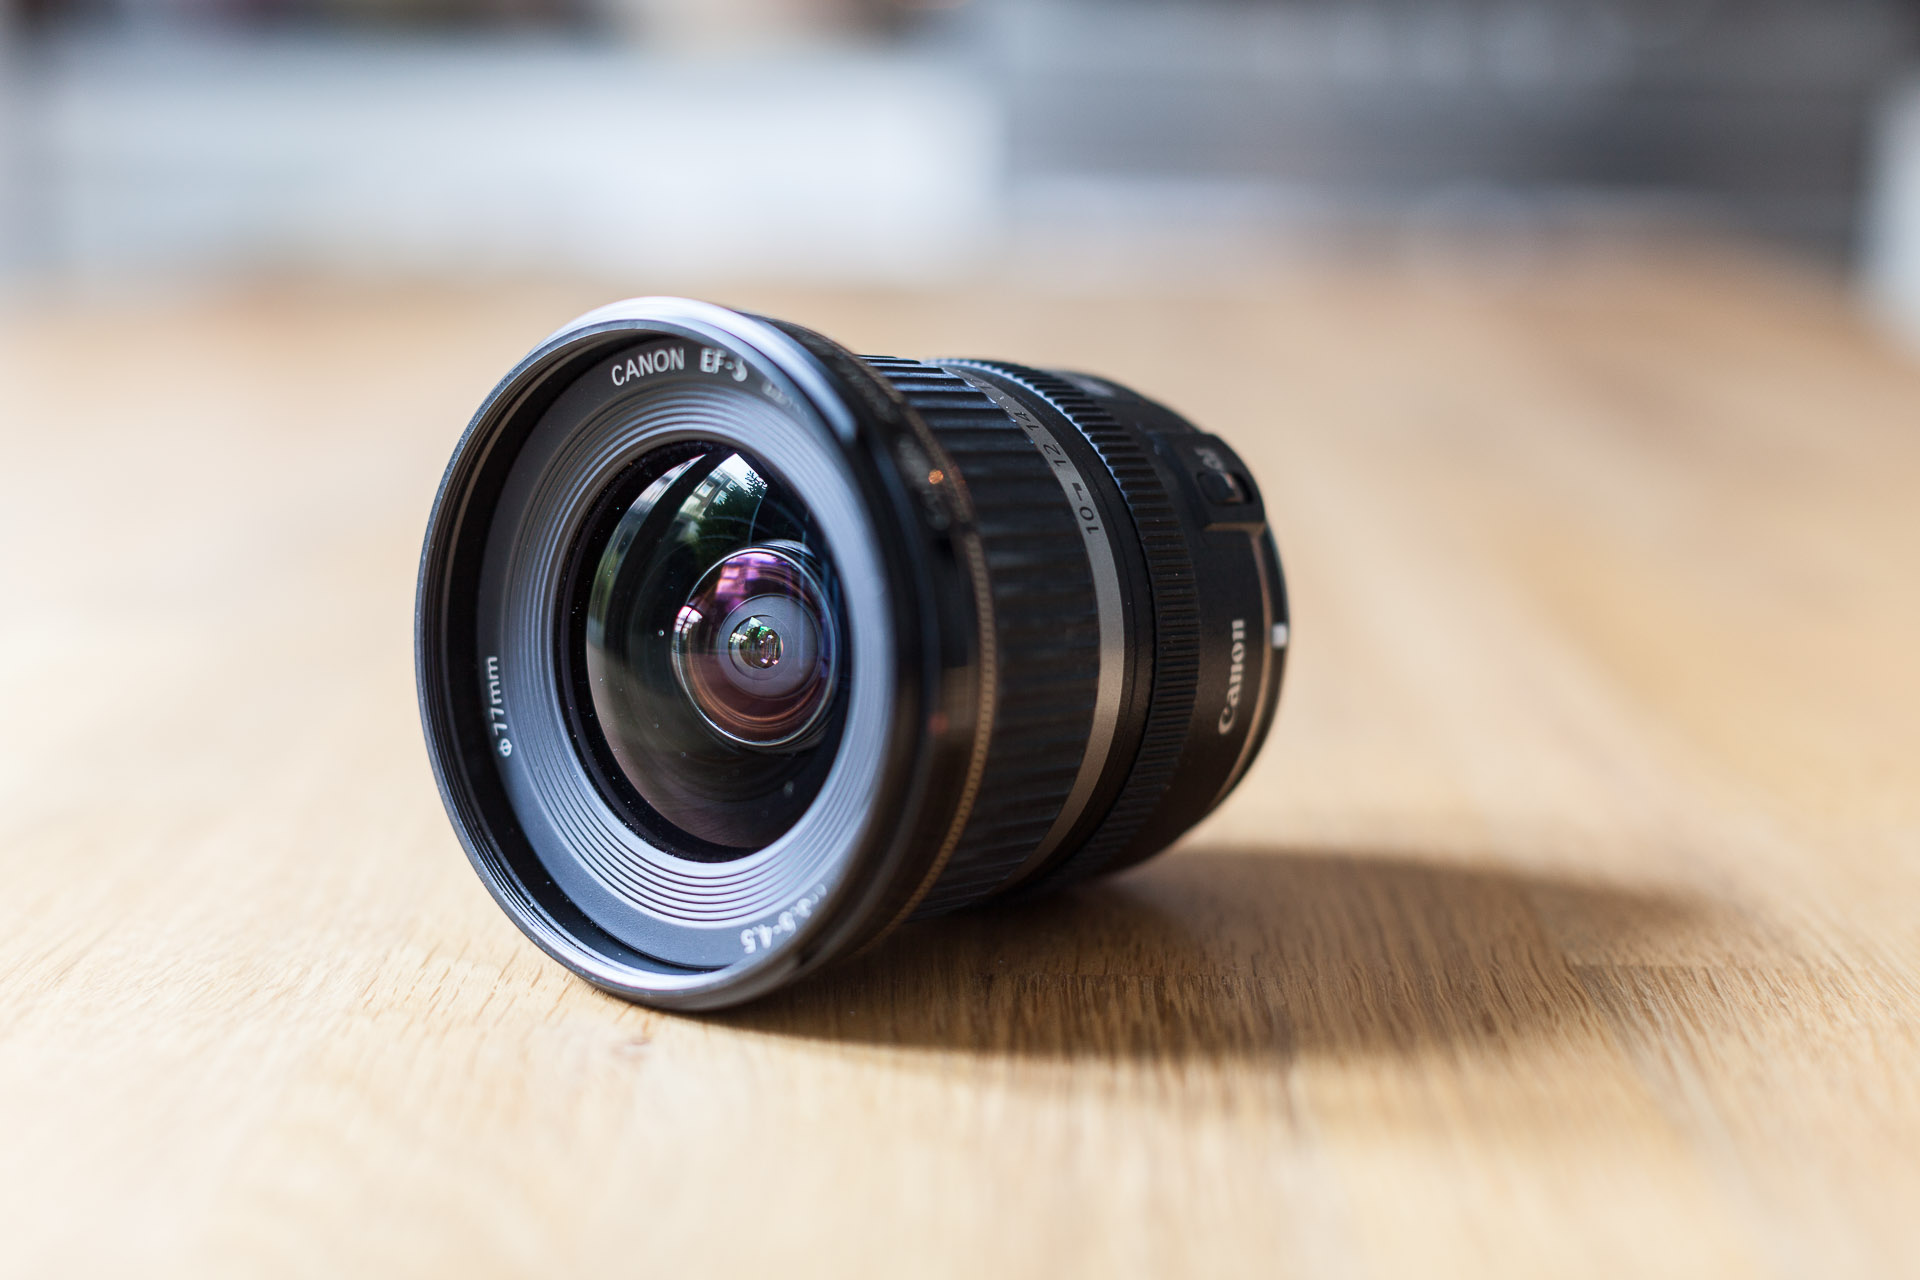 Canon EFS 10-22mm f3.5-4.5 for Sale